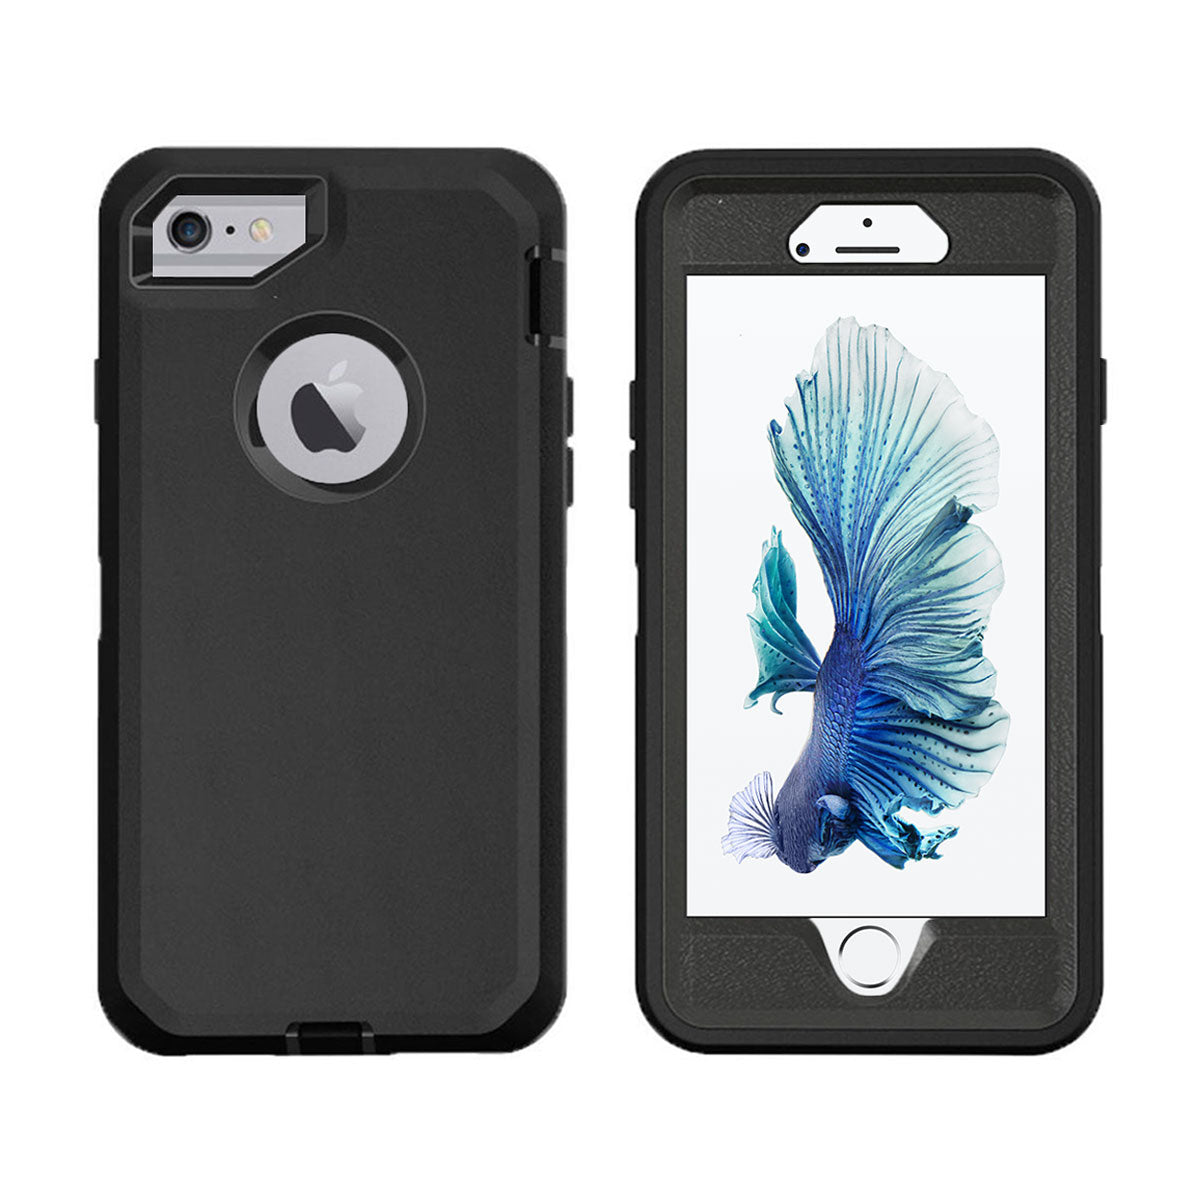 new arrival 56cc8 47106 Case For Apple Iphone 6/6S Heavy Duty Military Grade Armor Protective Case,  Anti Shock Defender Cover Shell For Apple 6/6S - Black